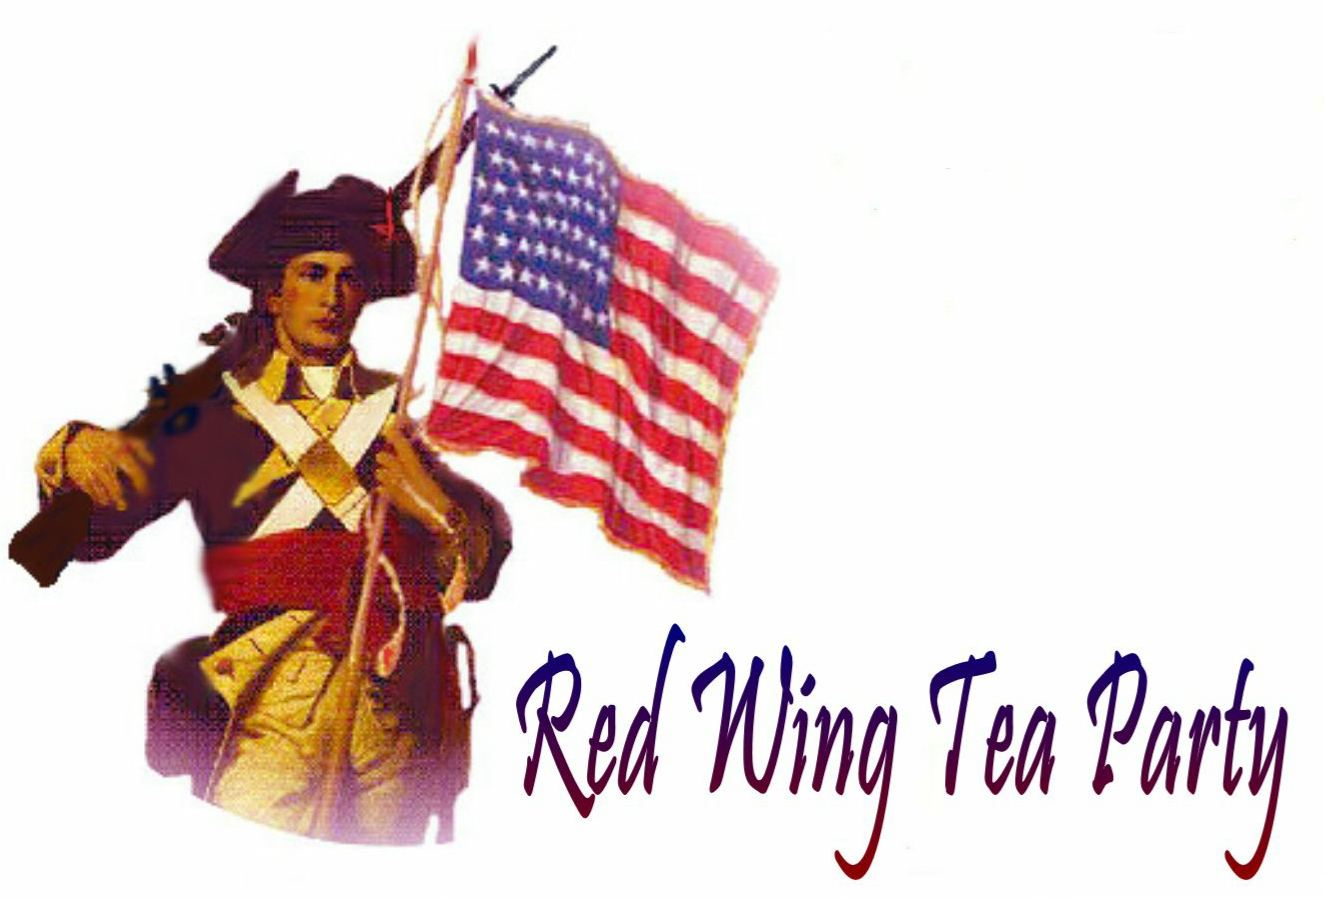 Red Wing Tea Party